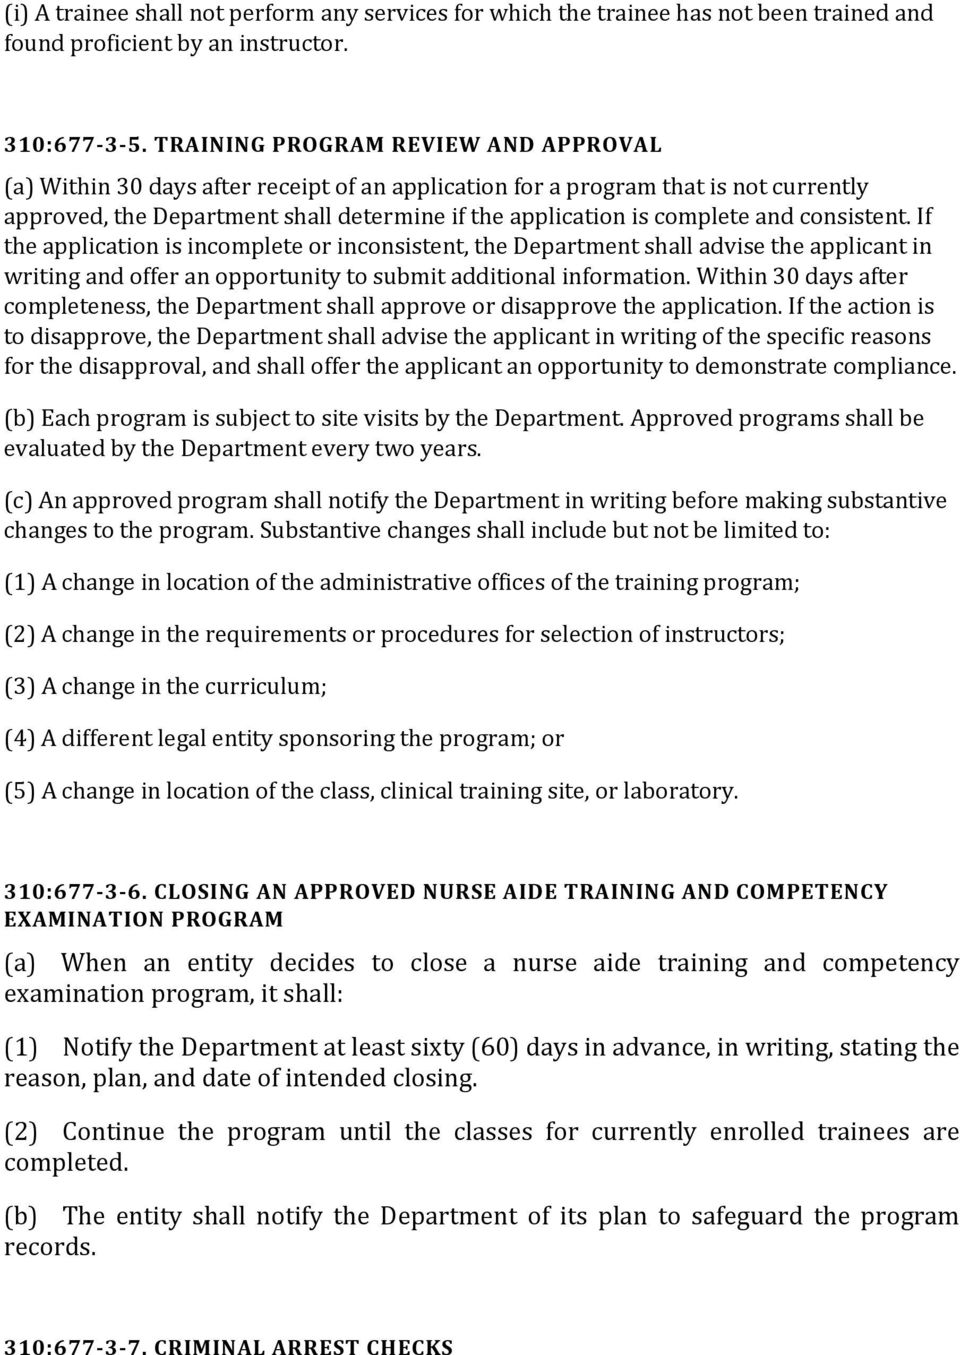 consistent. If the application is incomplete or inconsistent, the Department shall advise the applicant in writing and offer an opportunity to submit additional information.